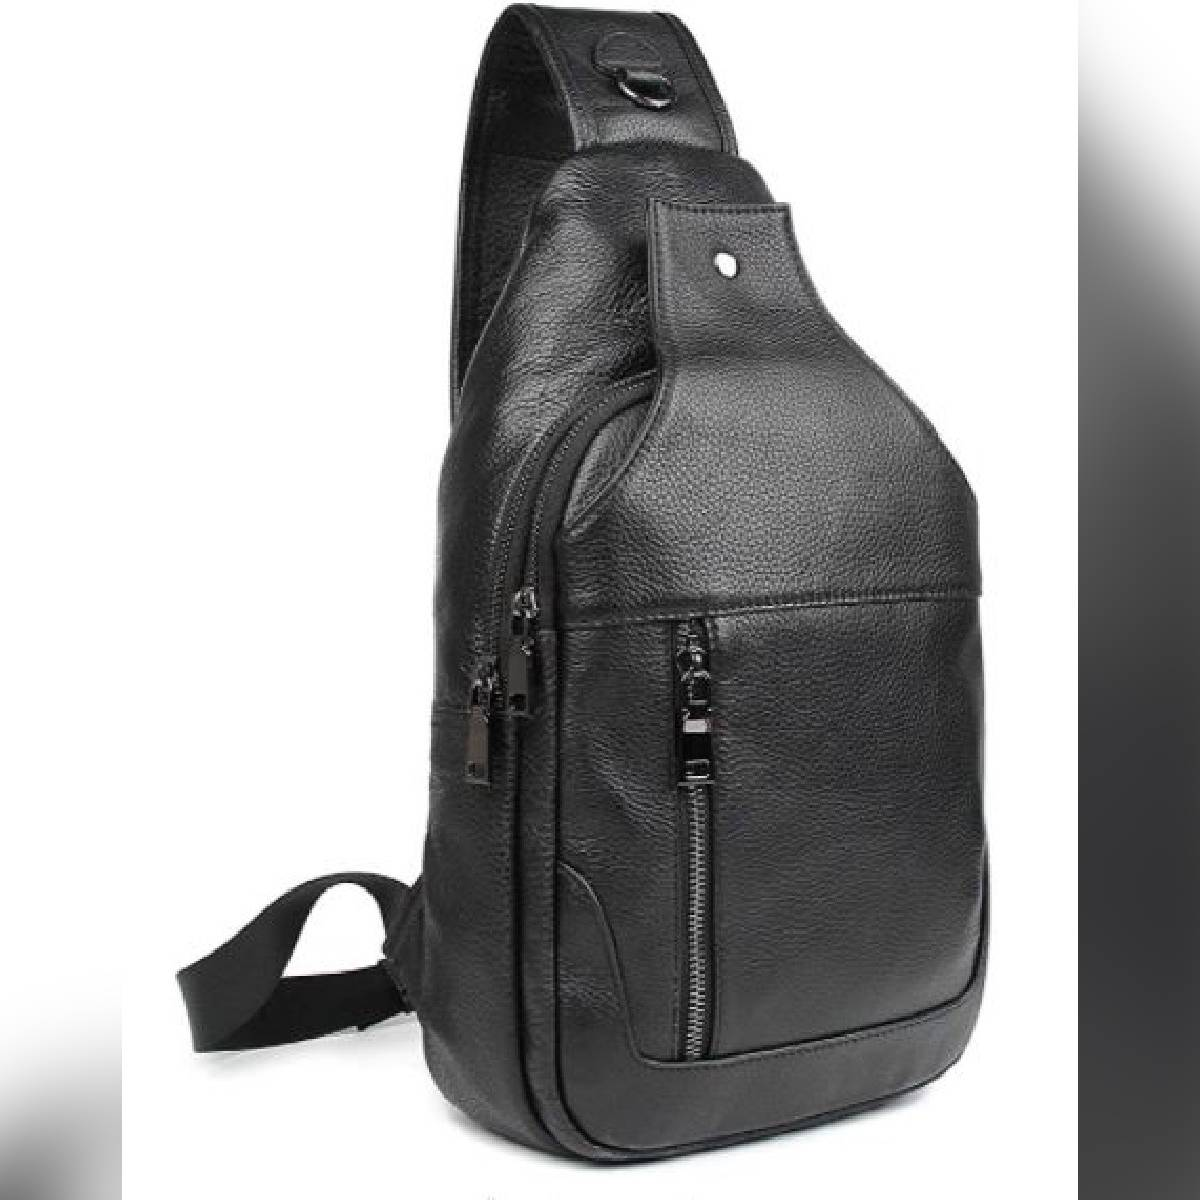 PU Leather Crossbody Bag for men Sling Mini Backpack for Boys in Brown Colour useable as Messenger Bag Gym Bag outdoor Travelling Bag for passport and I Pad & Mobile